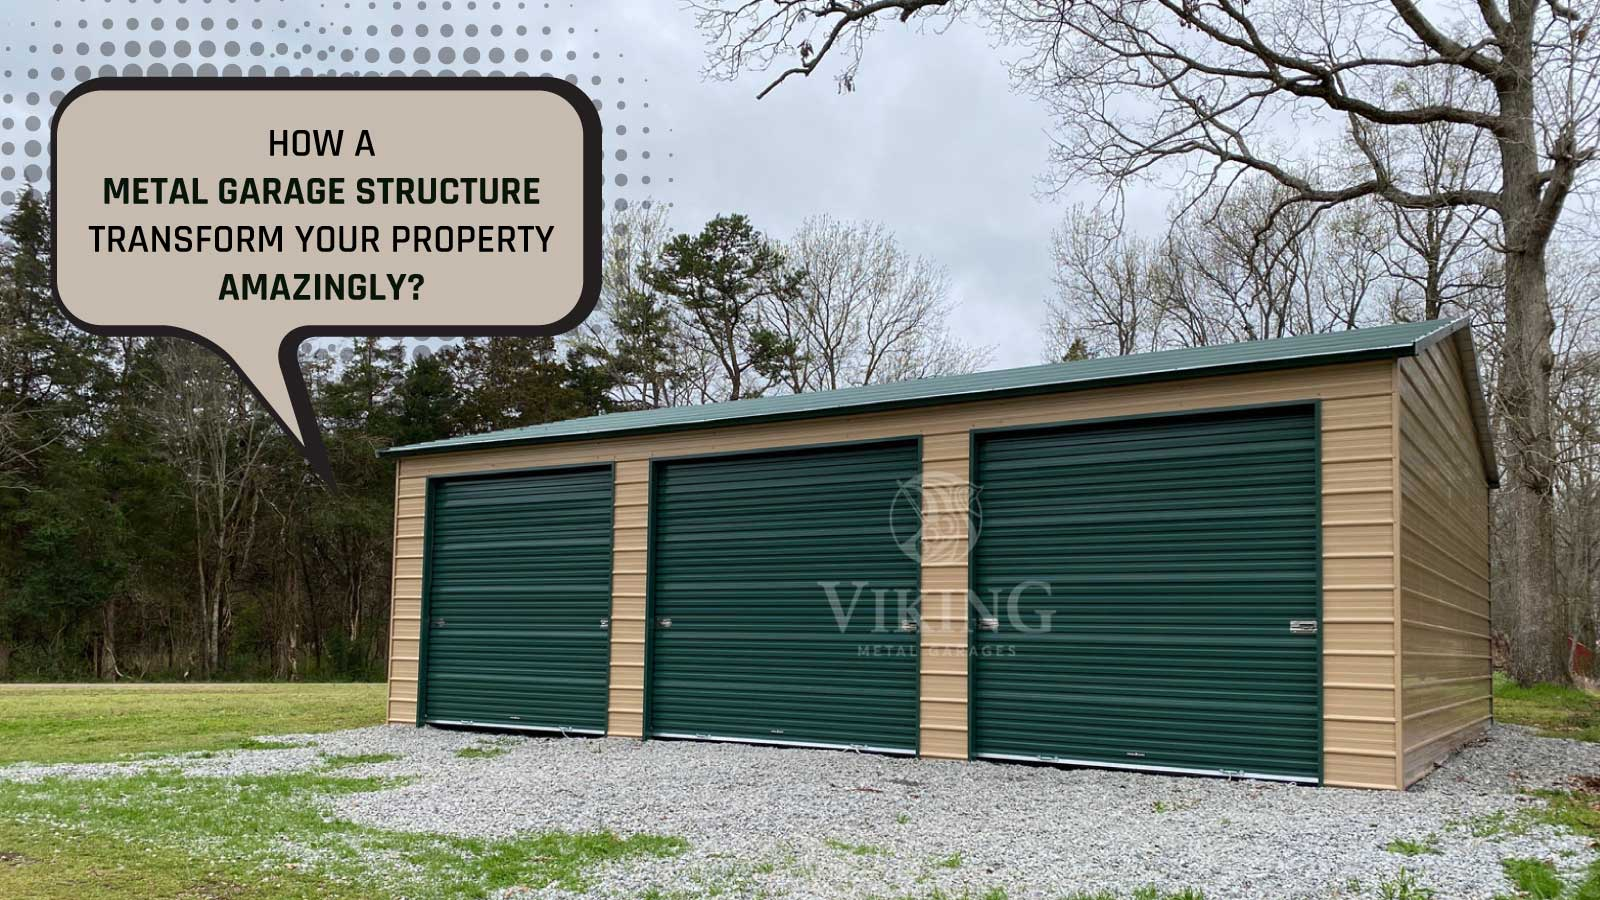 How a Metal Garage Structure Transform Your Property Amazingly?